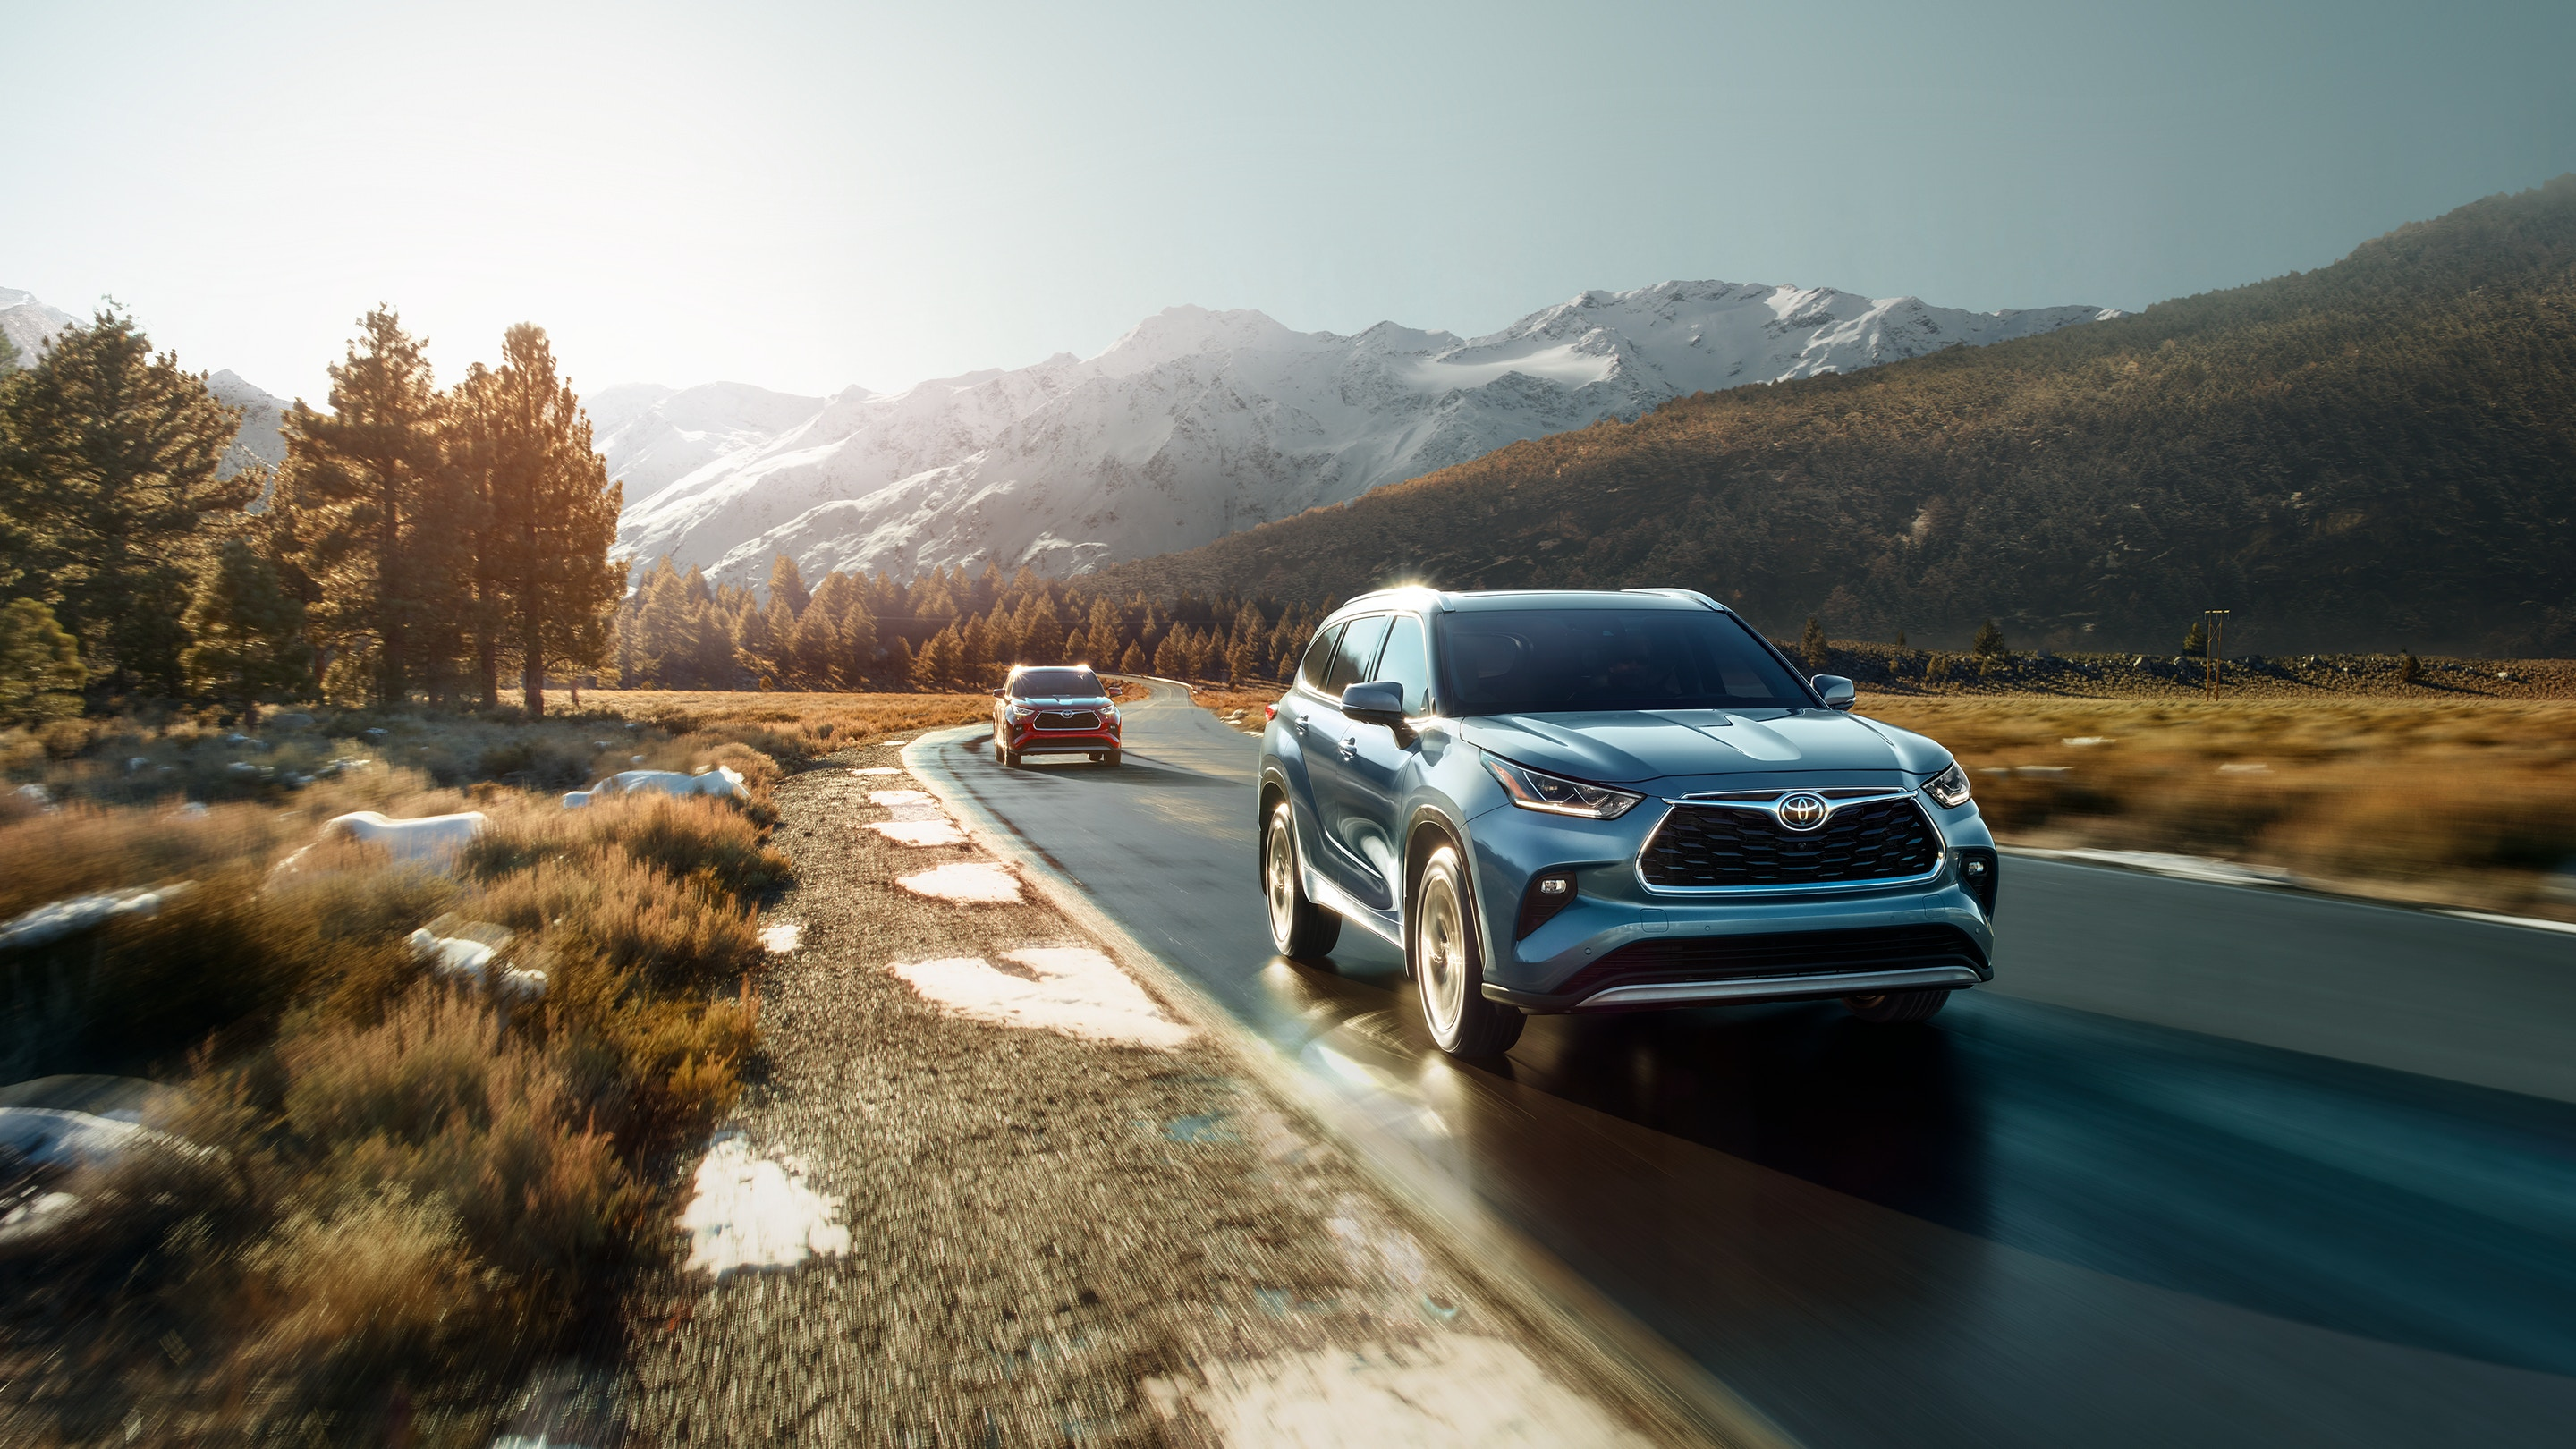 2020 Toyota Highlander for Sale near Sewickley, PA